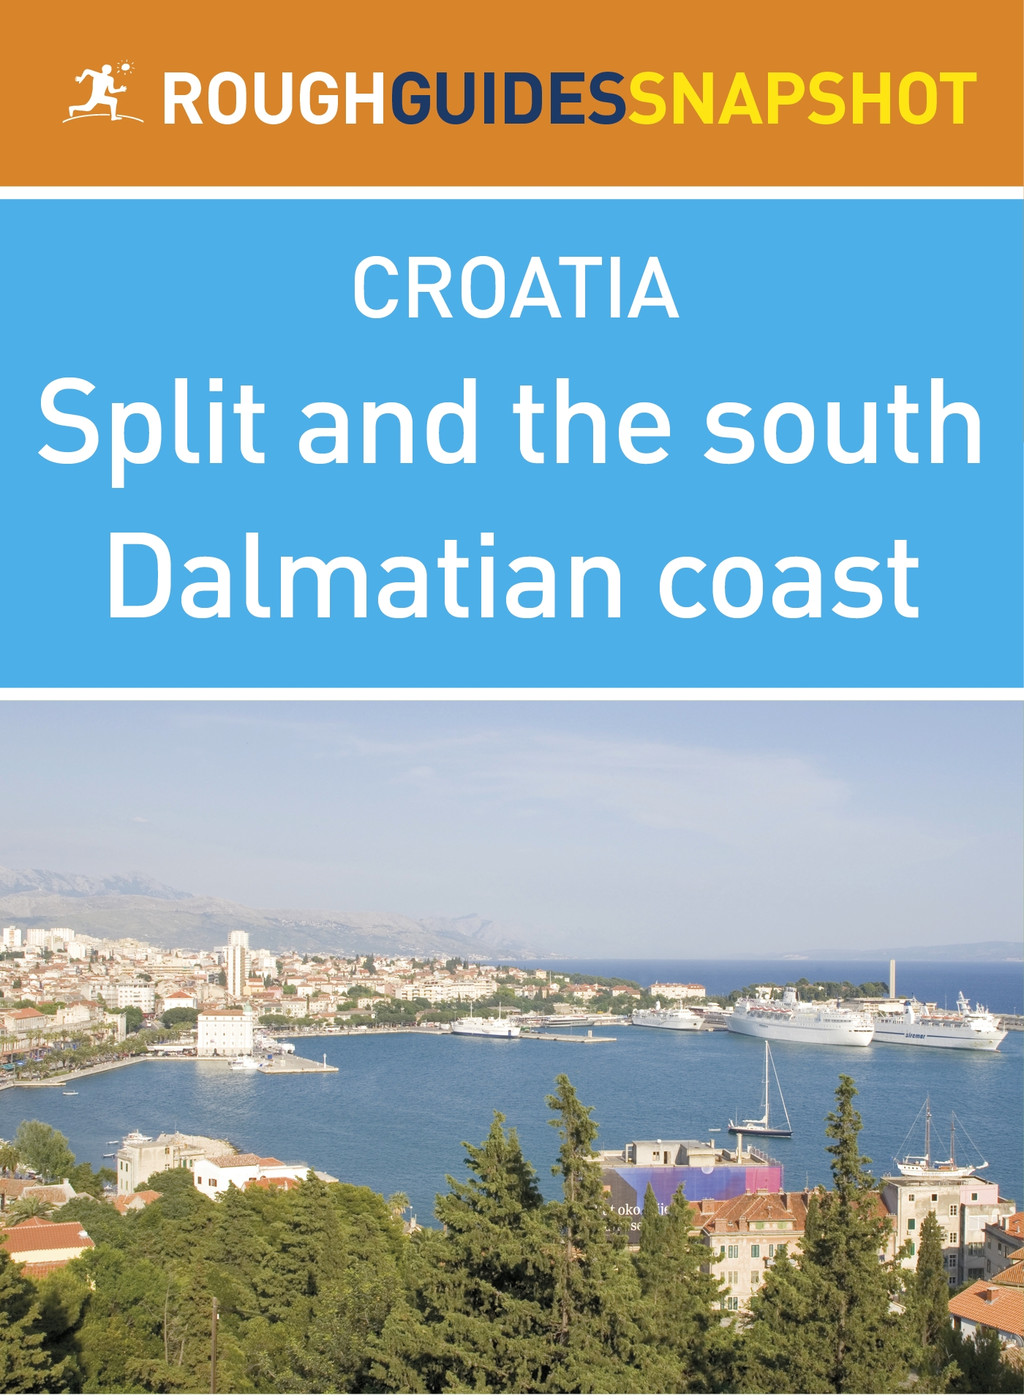 Split and the south Dalmatian coast Rough Guides Snapshot Croatia (includes Trogir,  the Cetina gorge,  the Makarska Riviera,  Mount Biokovo and the Nere